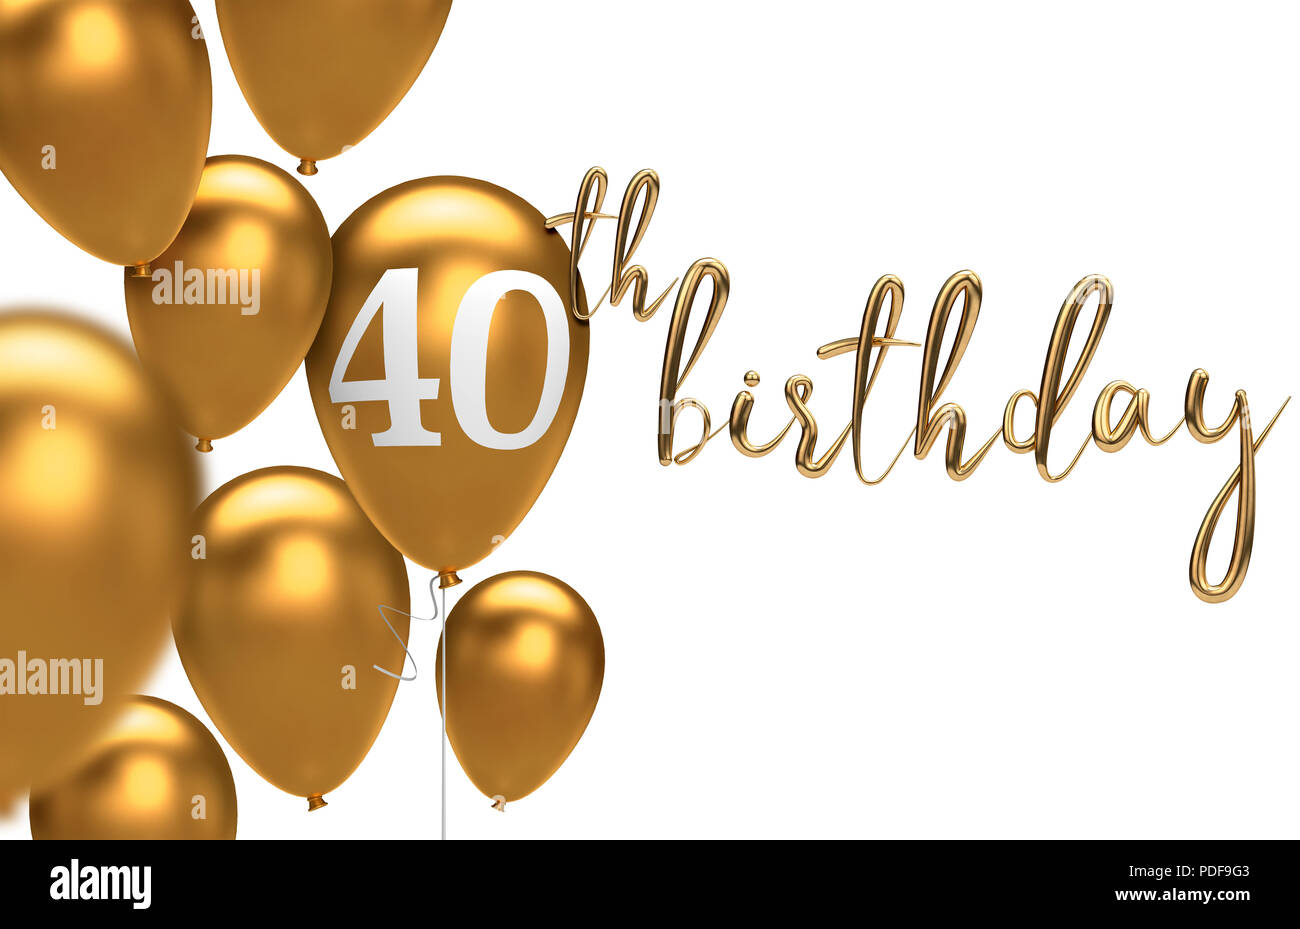 Gold Happy 40th Birthday Balloon Greeting Background 3D Rendering